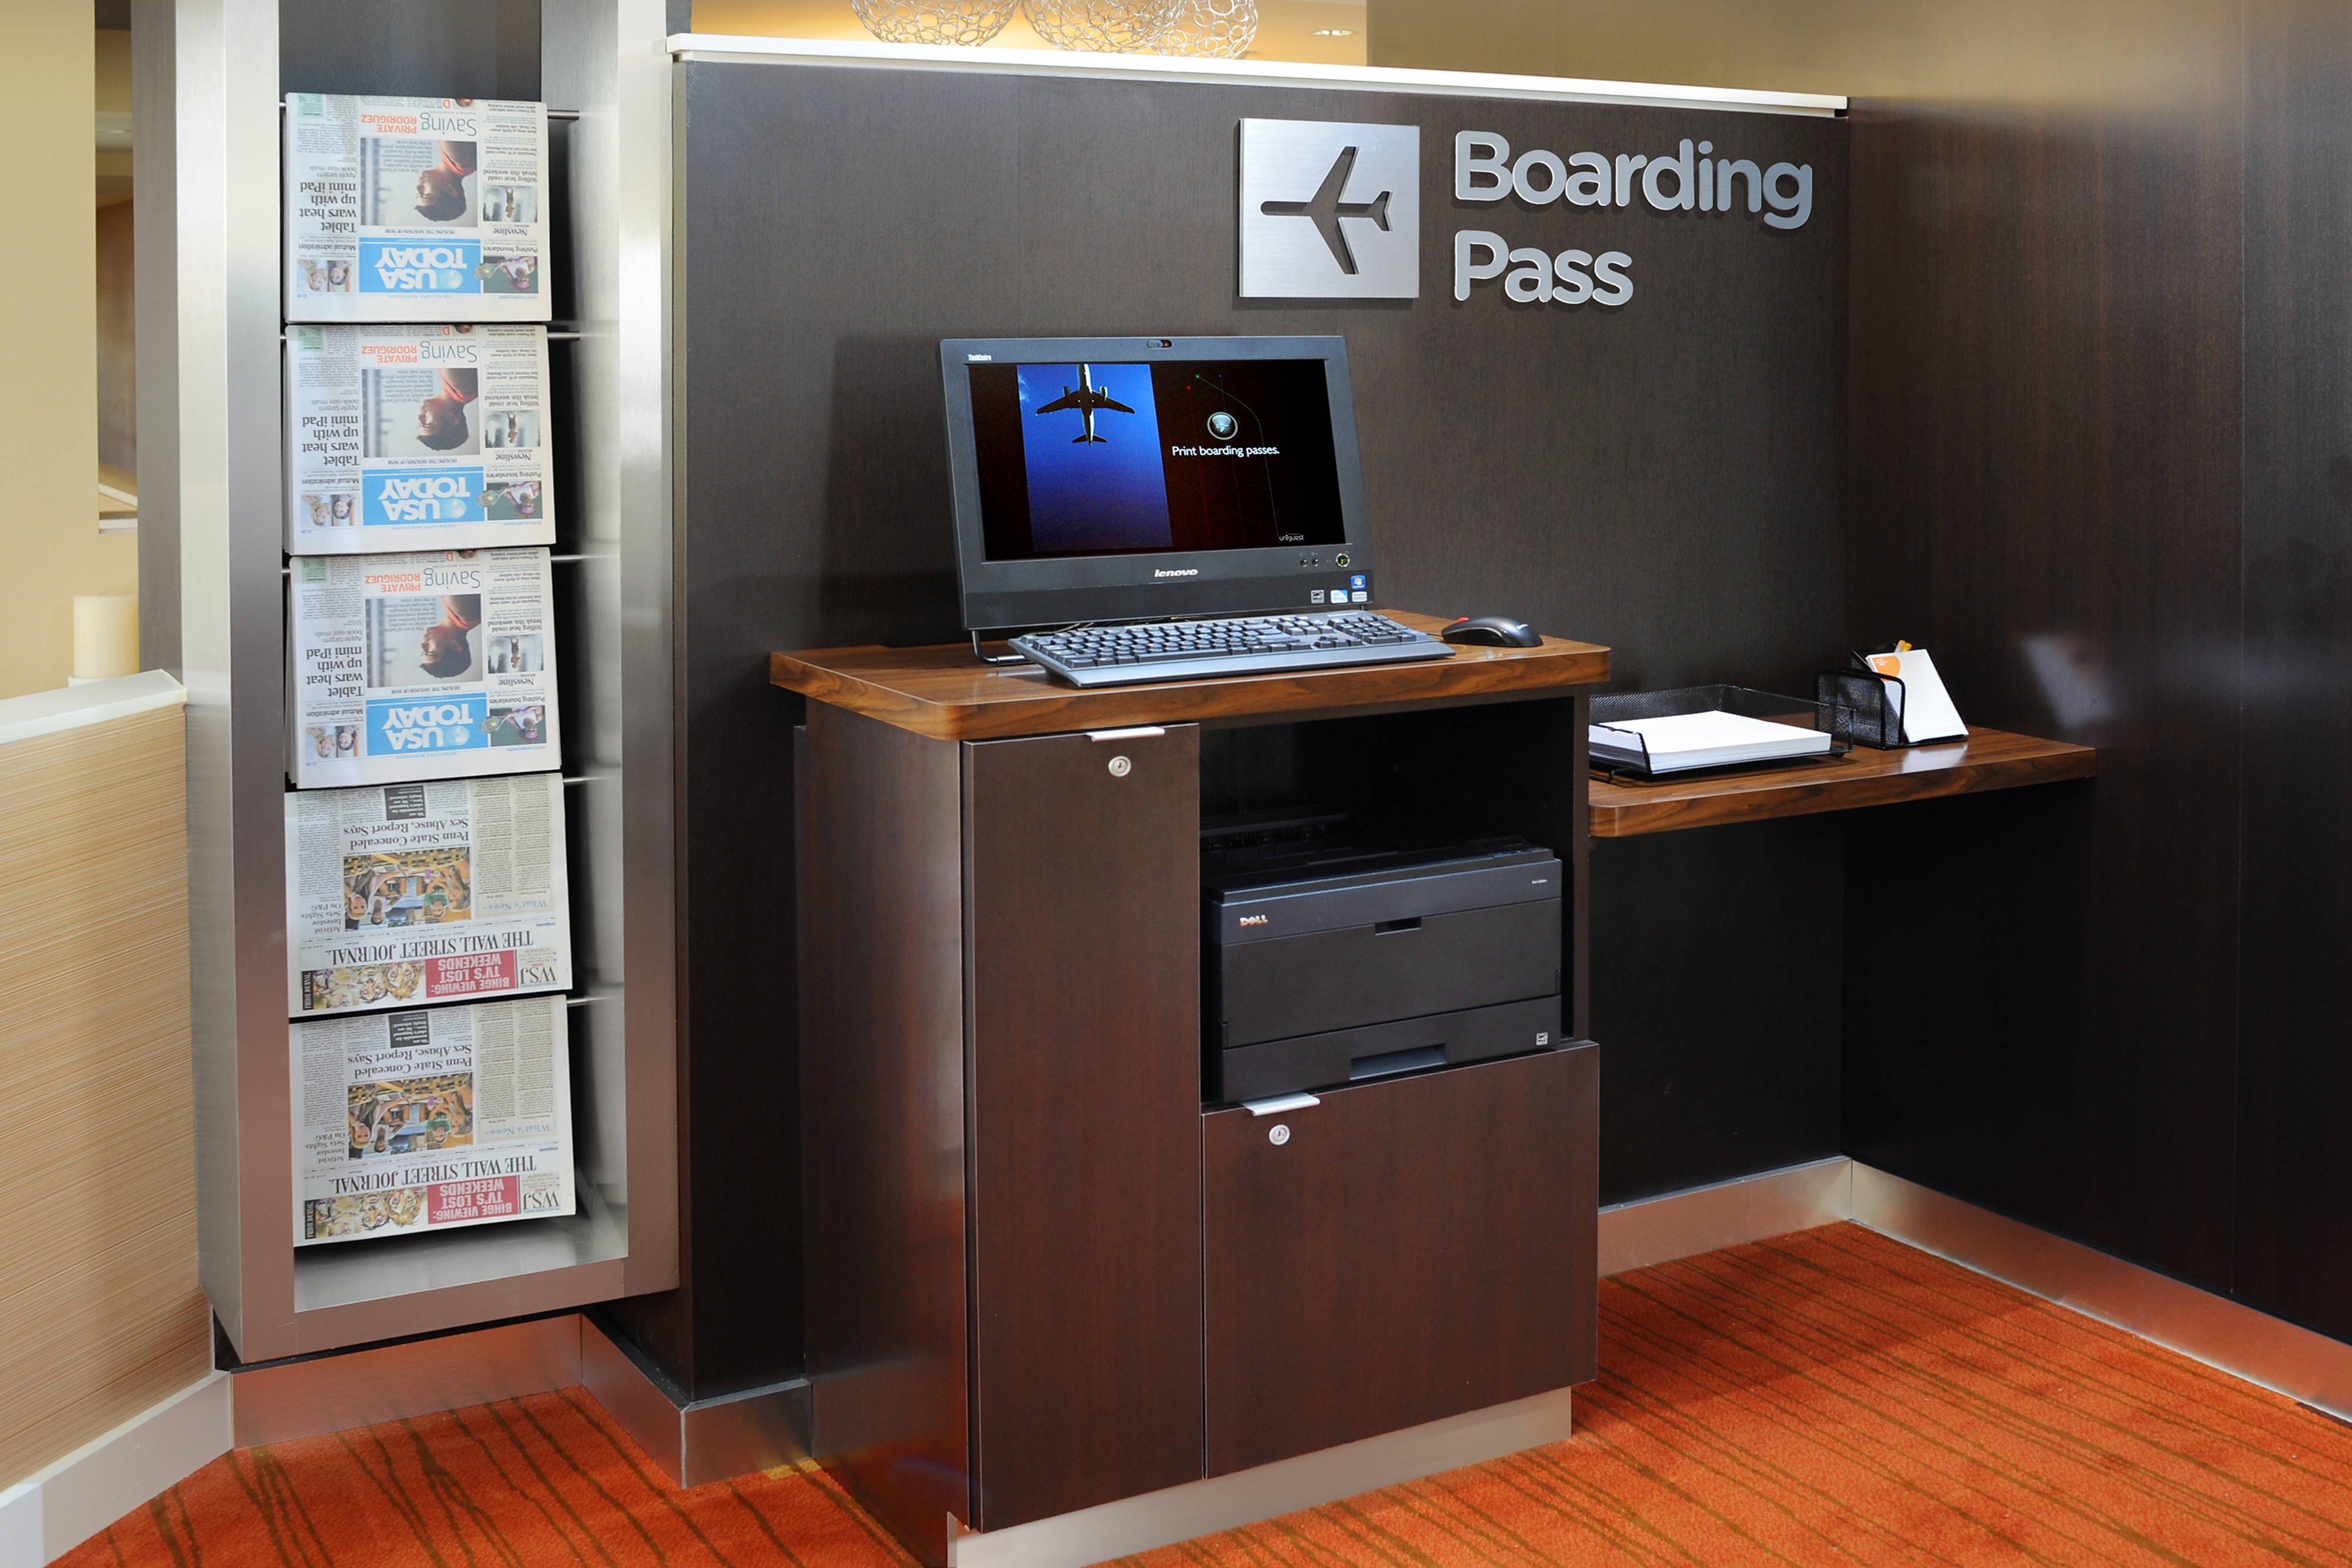 courtyard boarding pass print kiosk